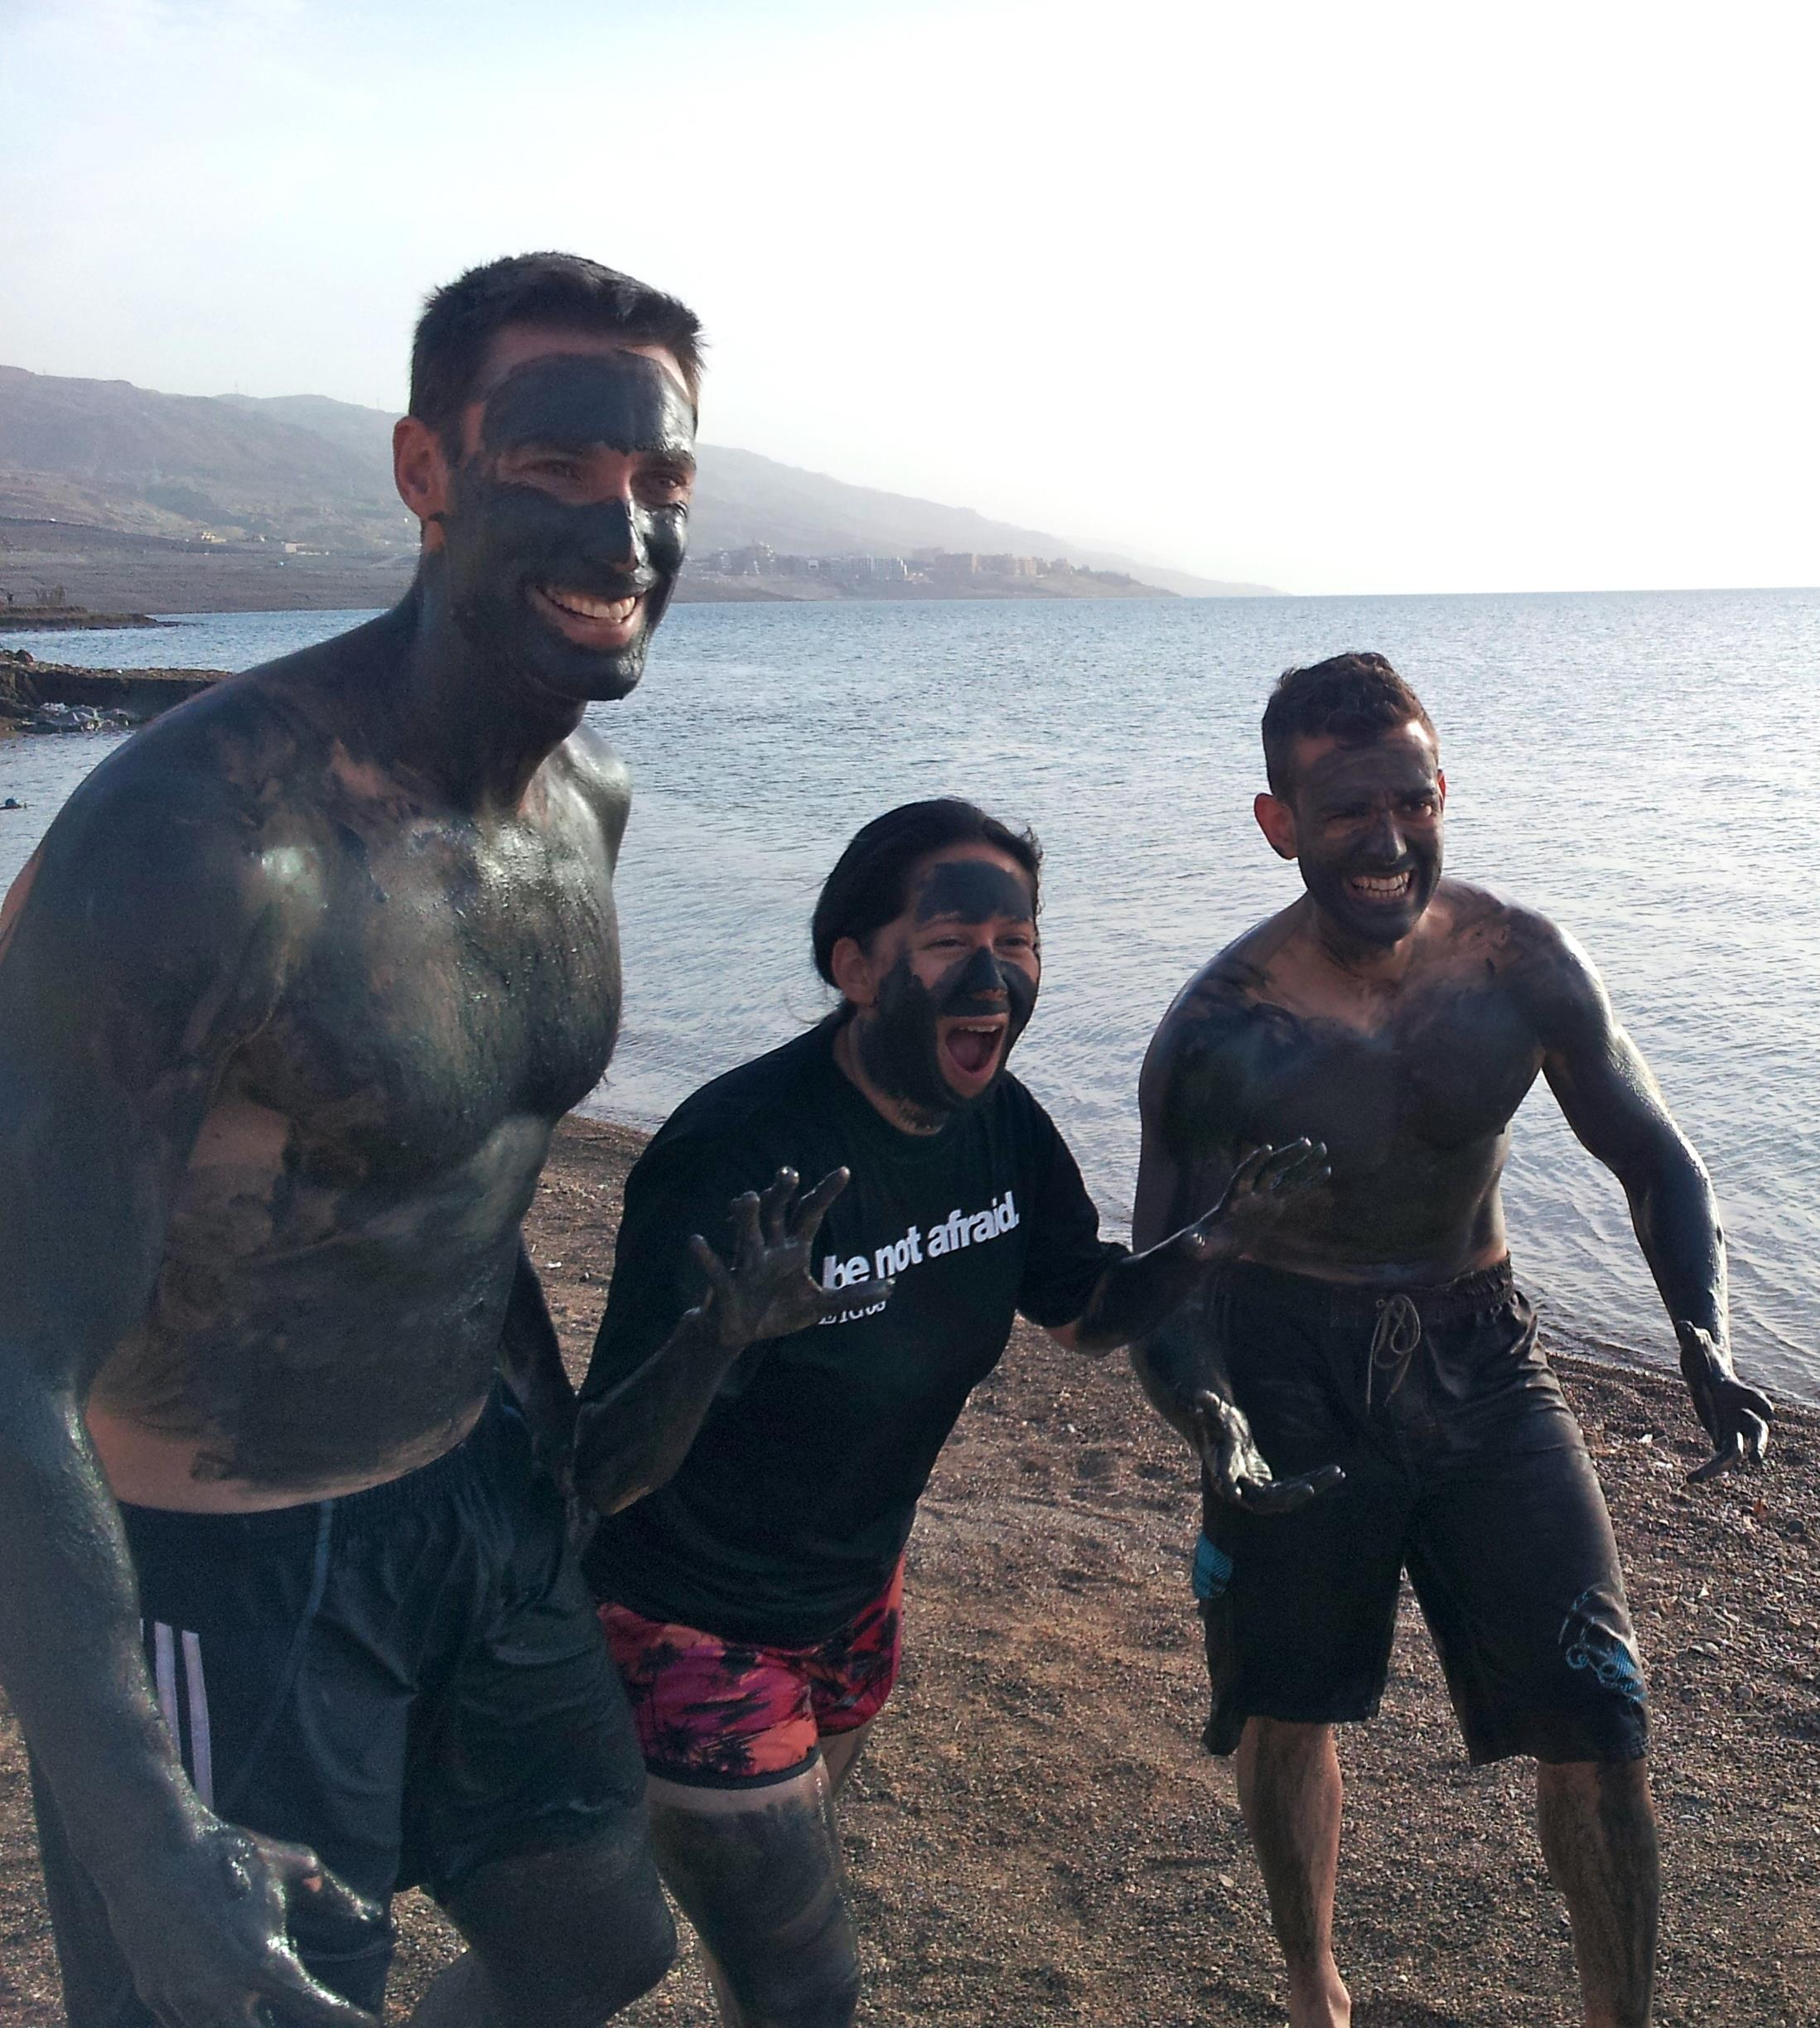 Enjoying the Dead Sea mud while on pilgrimage